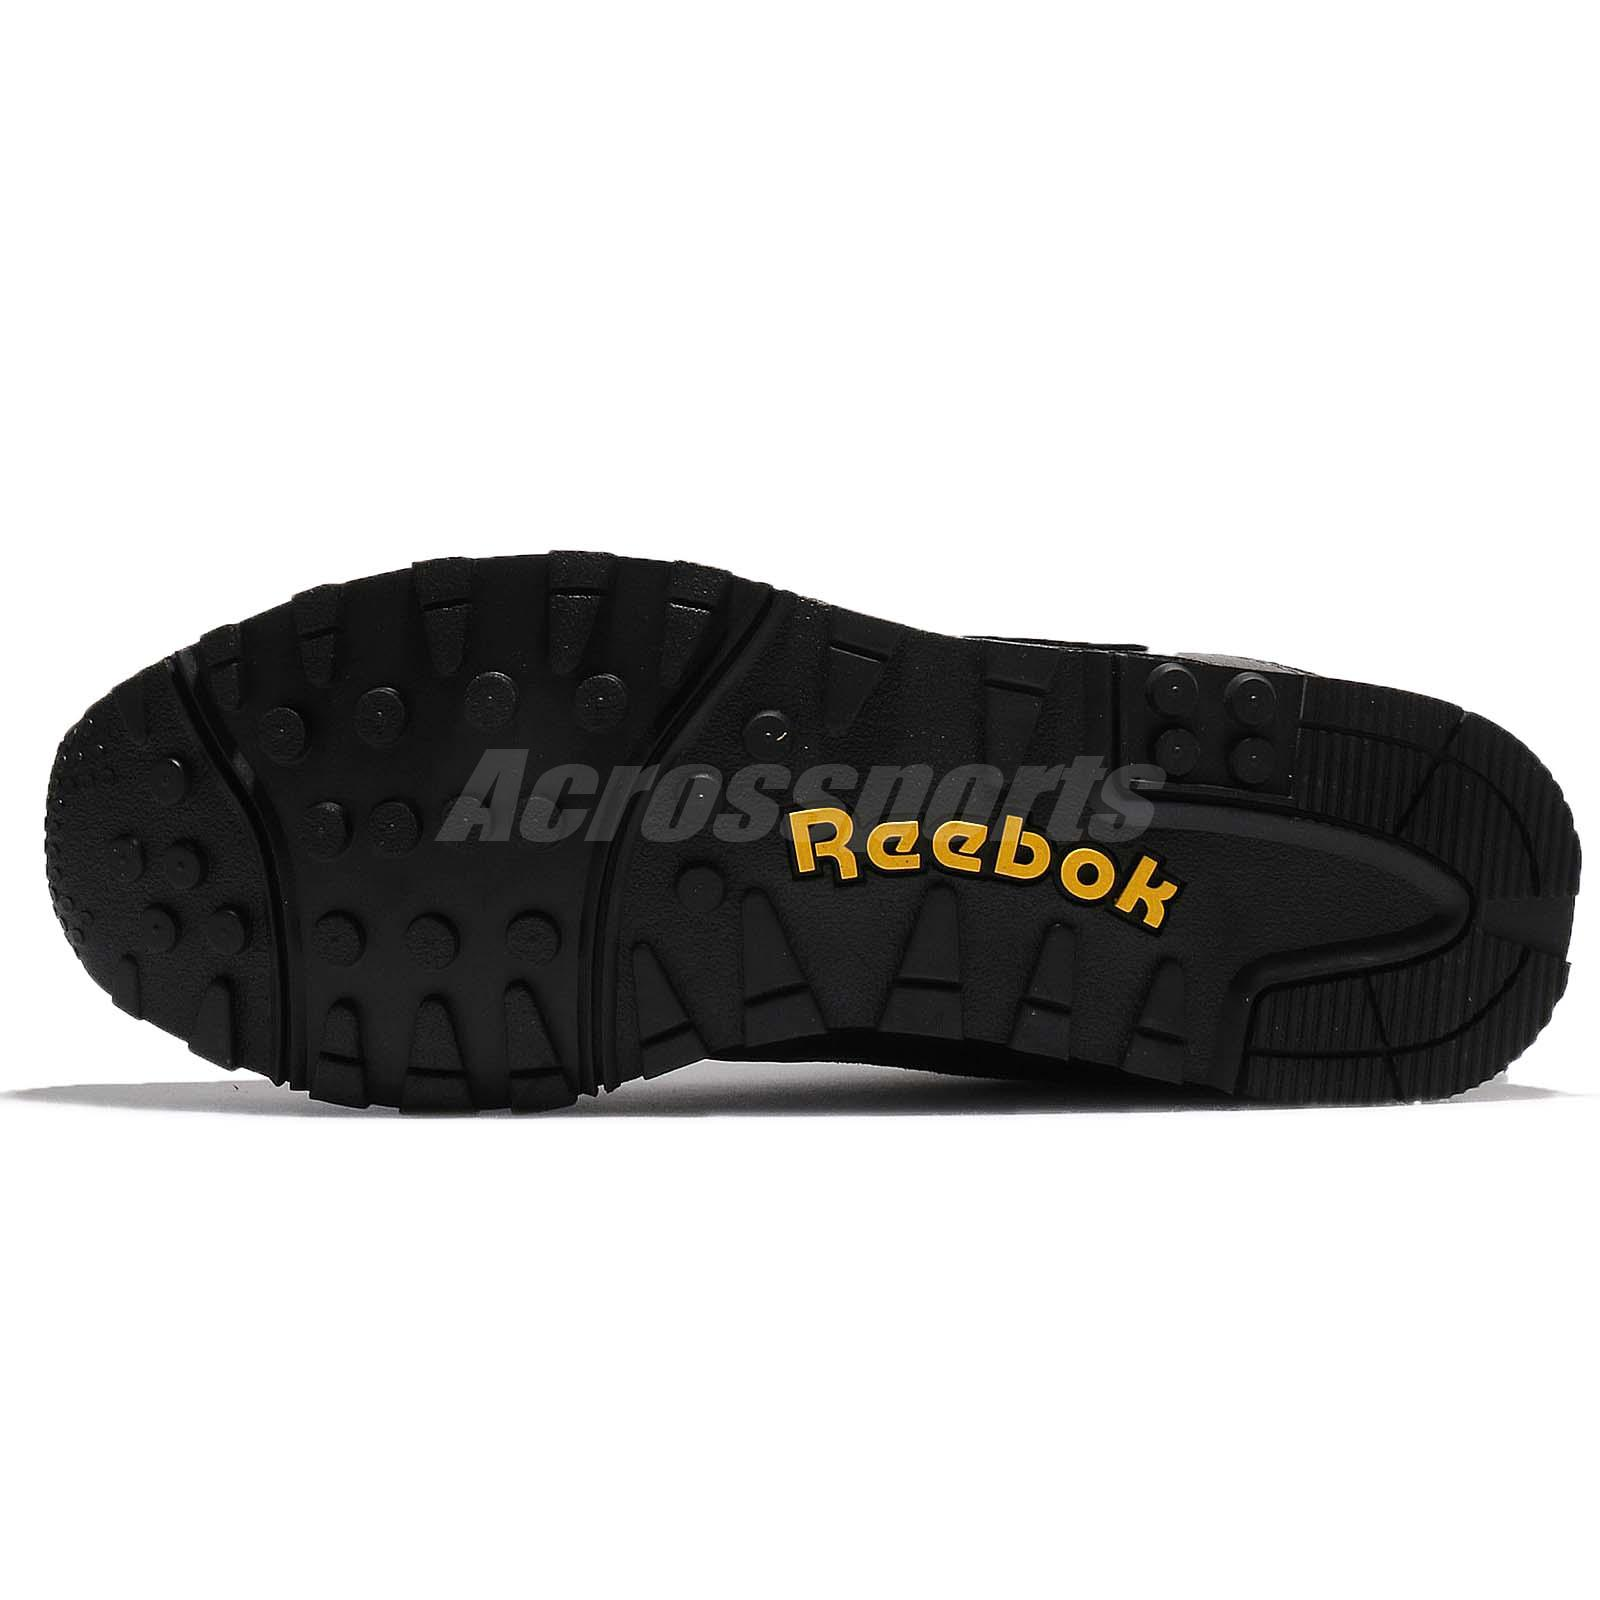 028f6da5f68f Reebok Rapide NHP Black Suede Men Running Shoes Sneakers Trainers ...